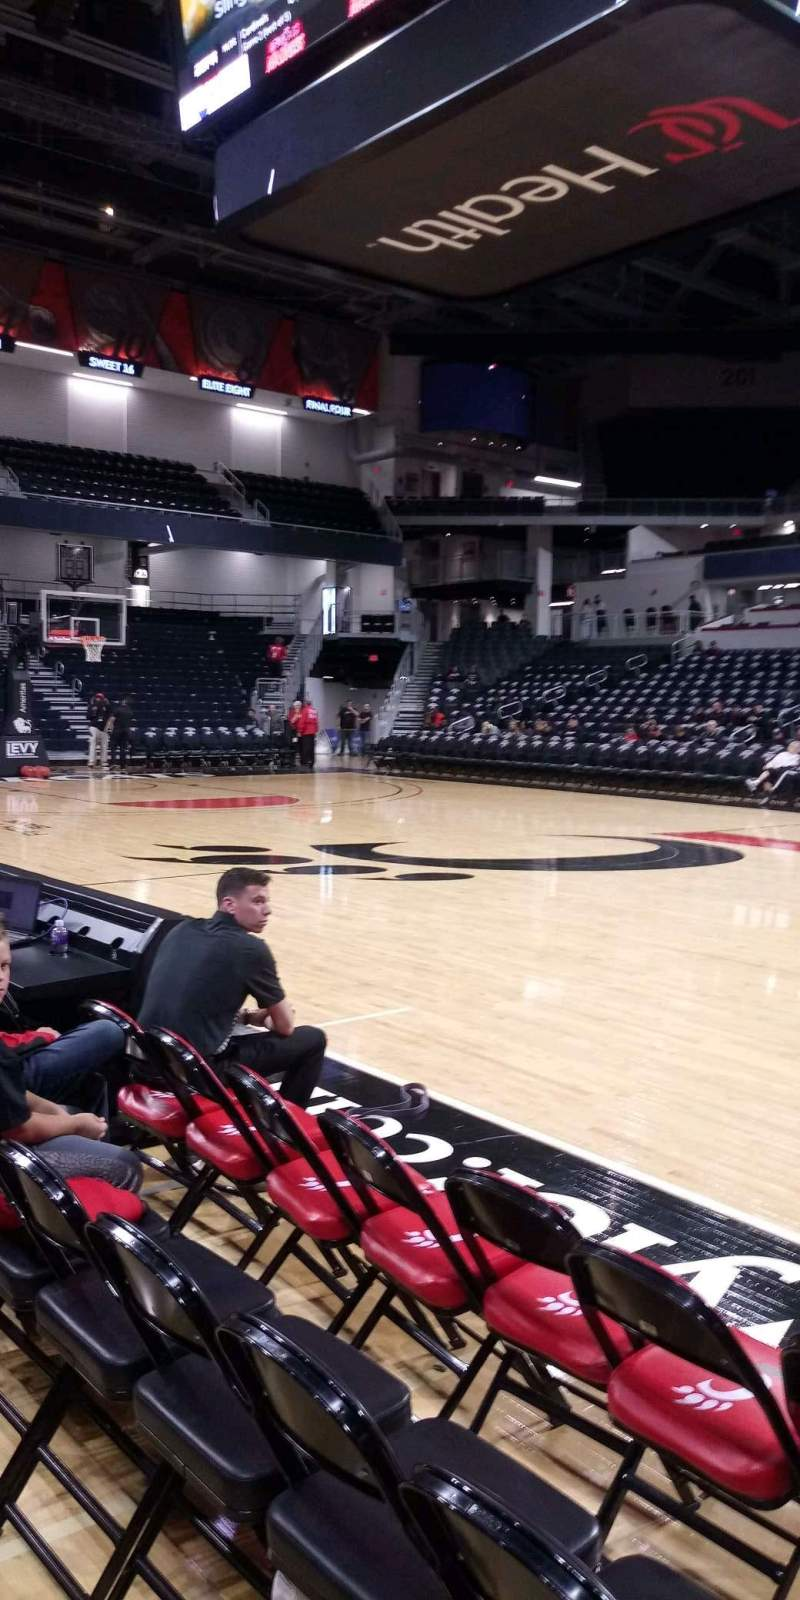 Seating view for Fifth Third Arena Section 115 Row 1 Seat 3